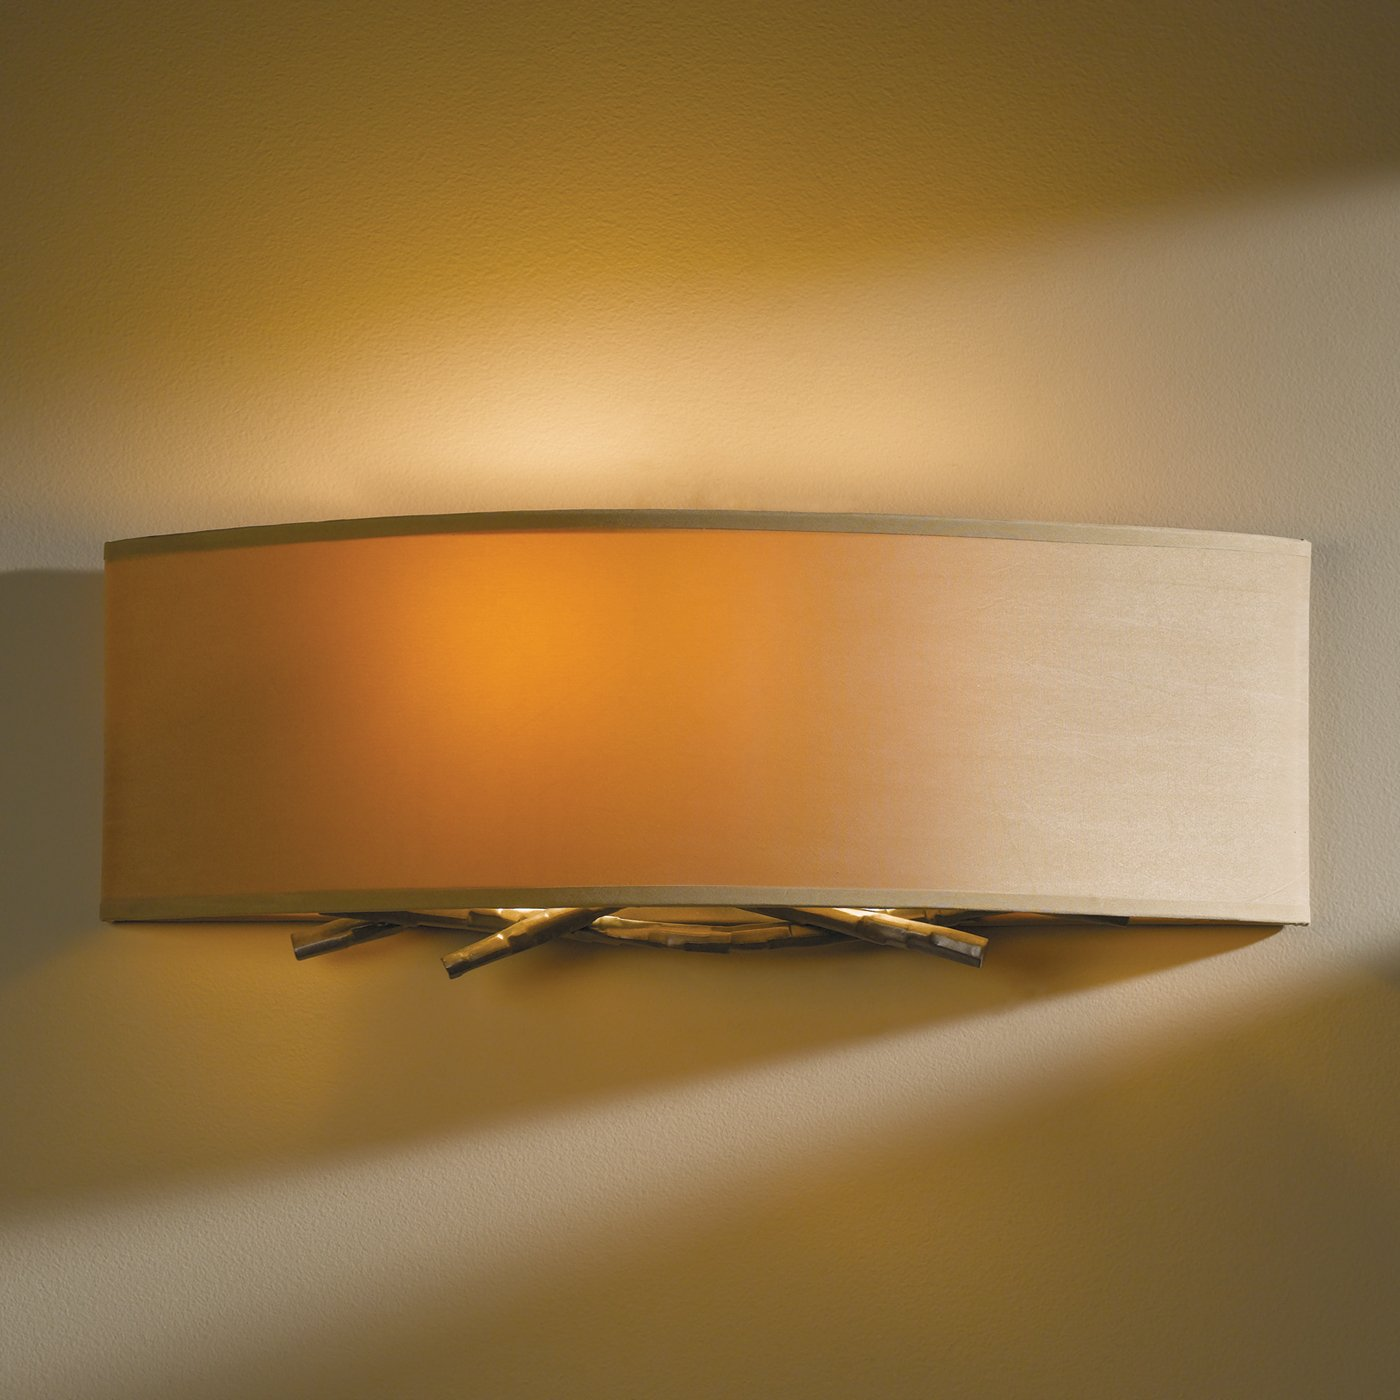 Image of: Design Hubbardton Forge Sconce